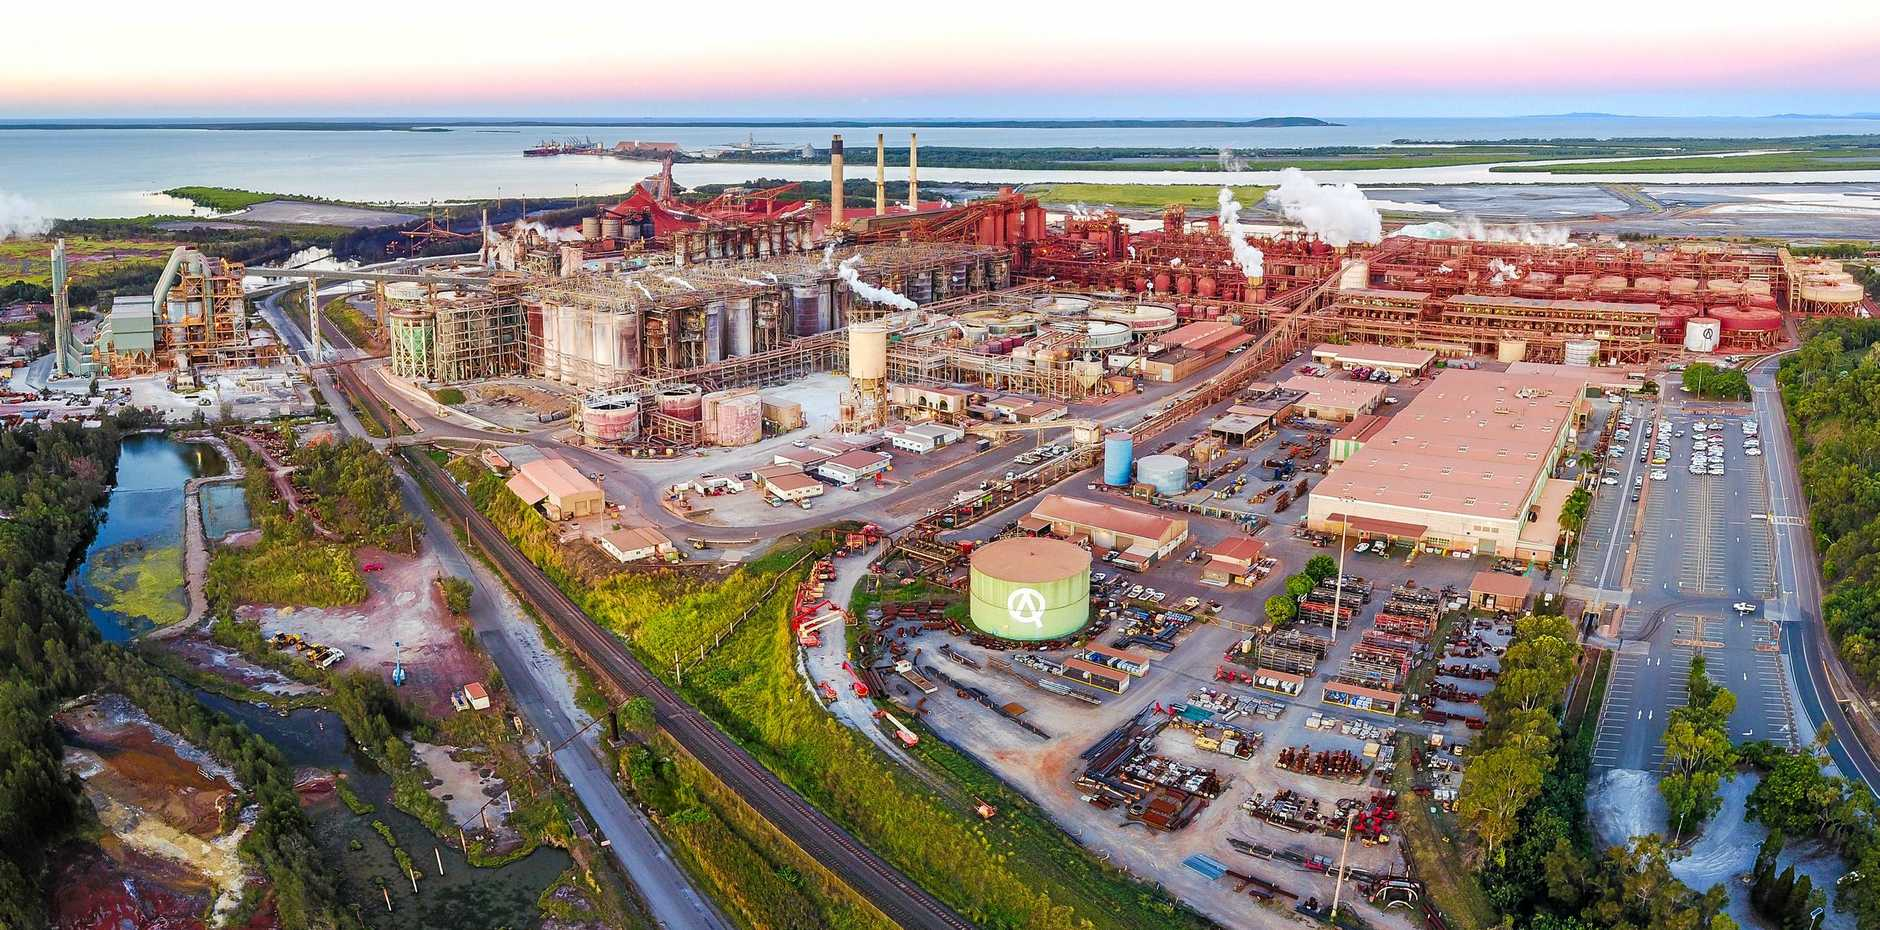 REFINING BUSINESS: International industry delegates will tour Queensland Alumina Limited next week as part of a five-day alumina conference held in Gladstone.